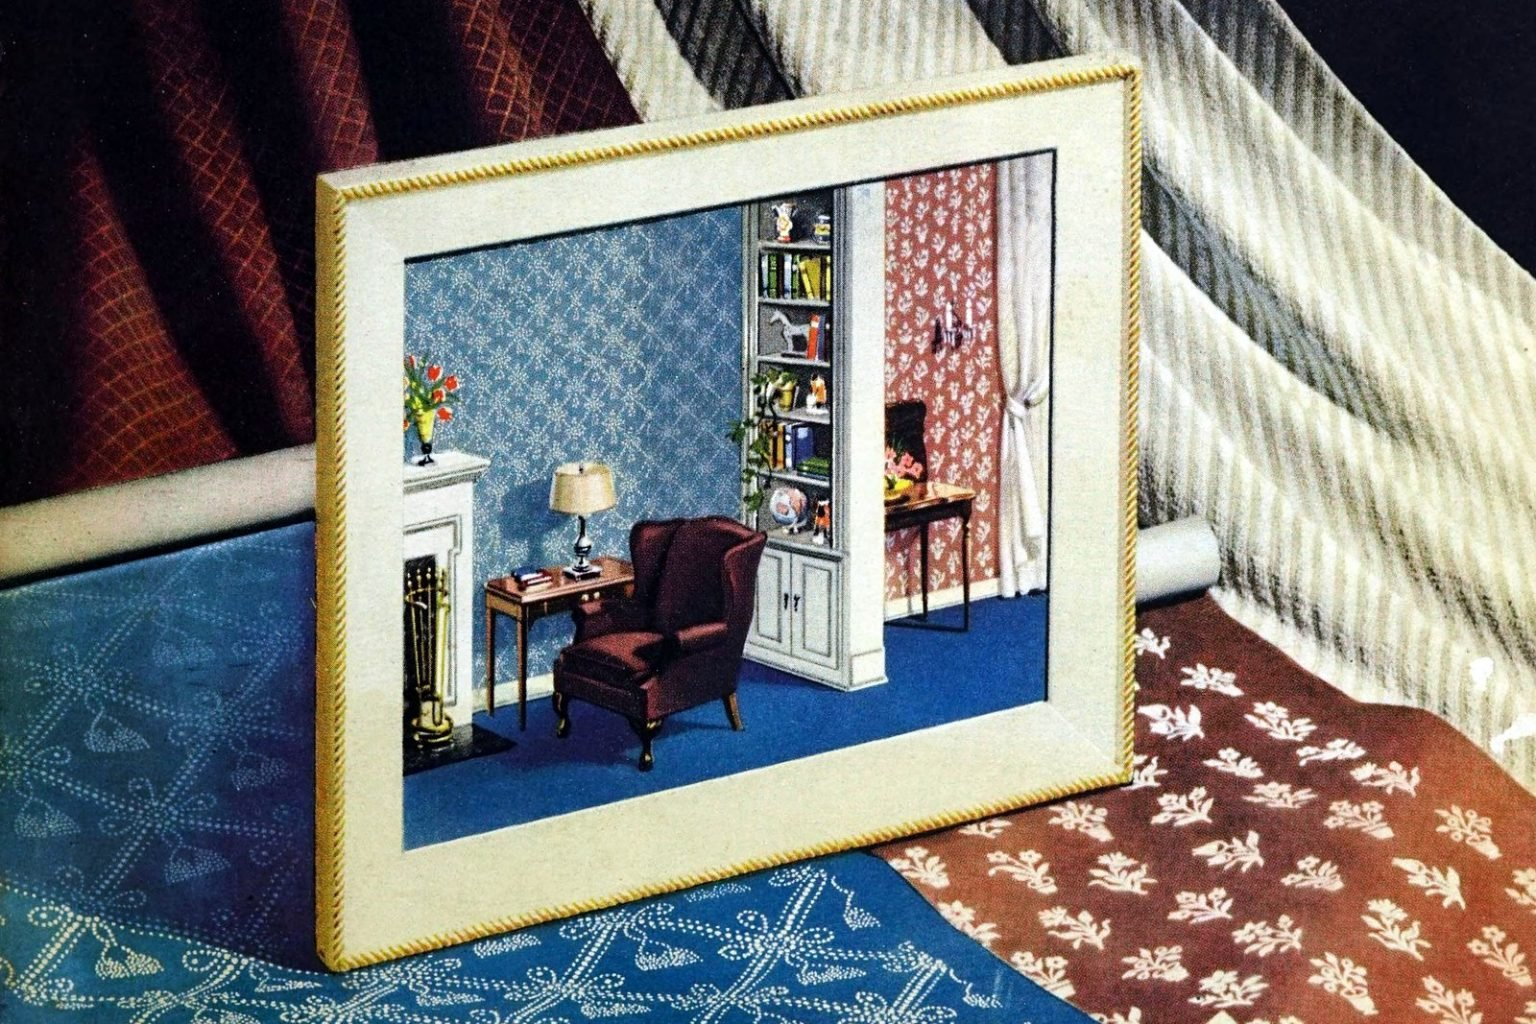 1940s vintage wallpaper See 150 examples of popular old patterns and colors